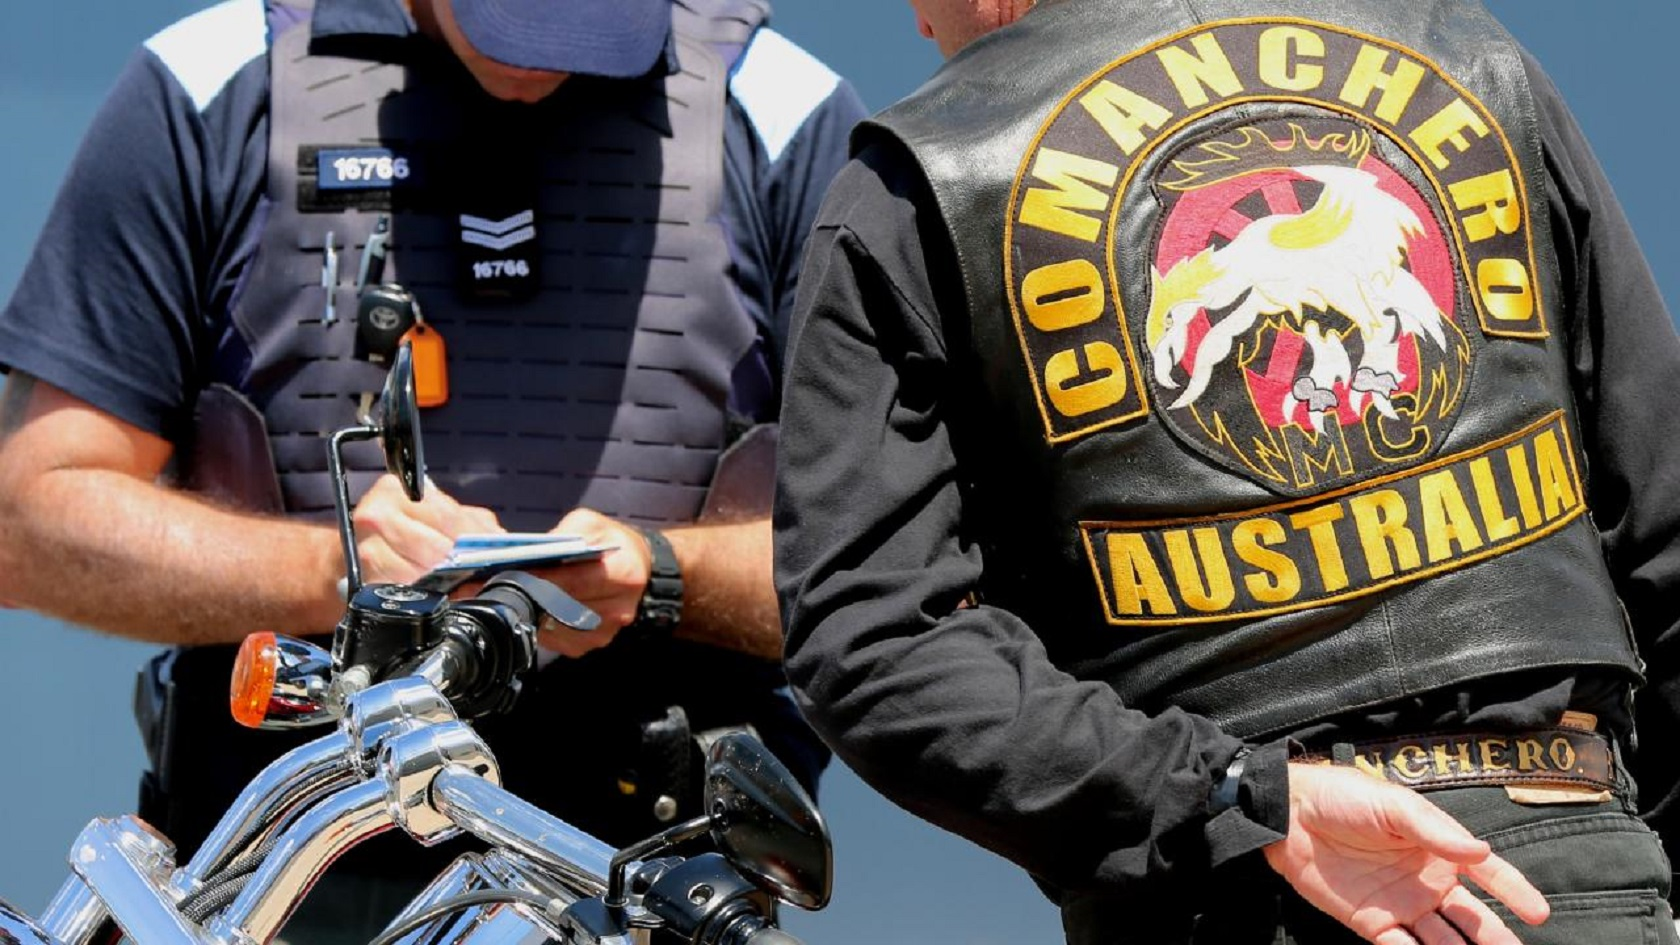 Comanchero bikie shot and killed in Sydney